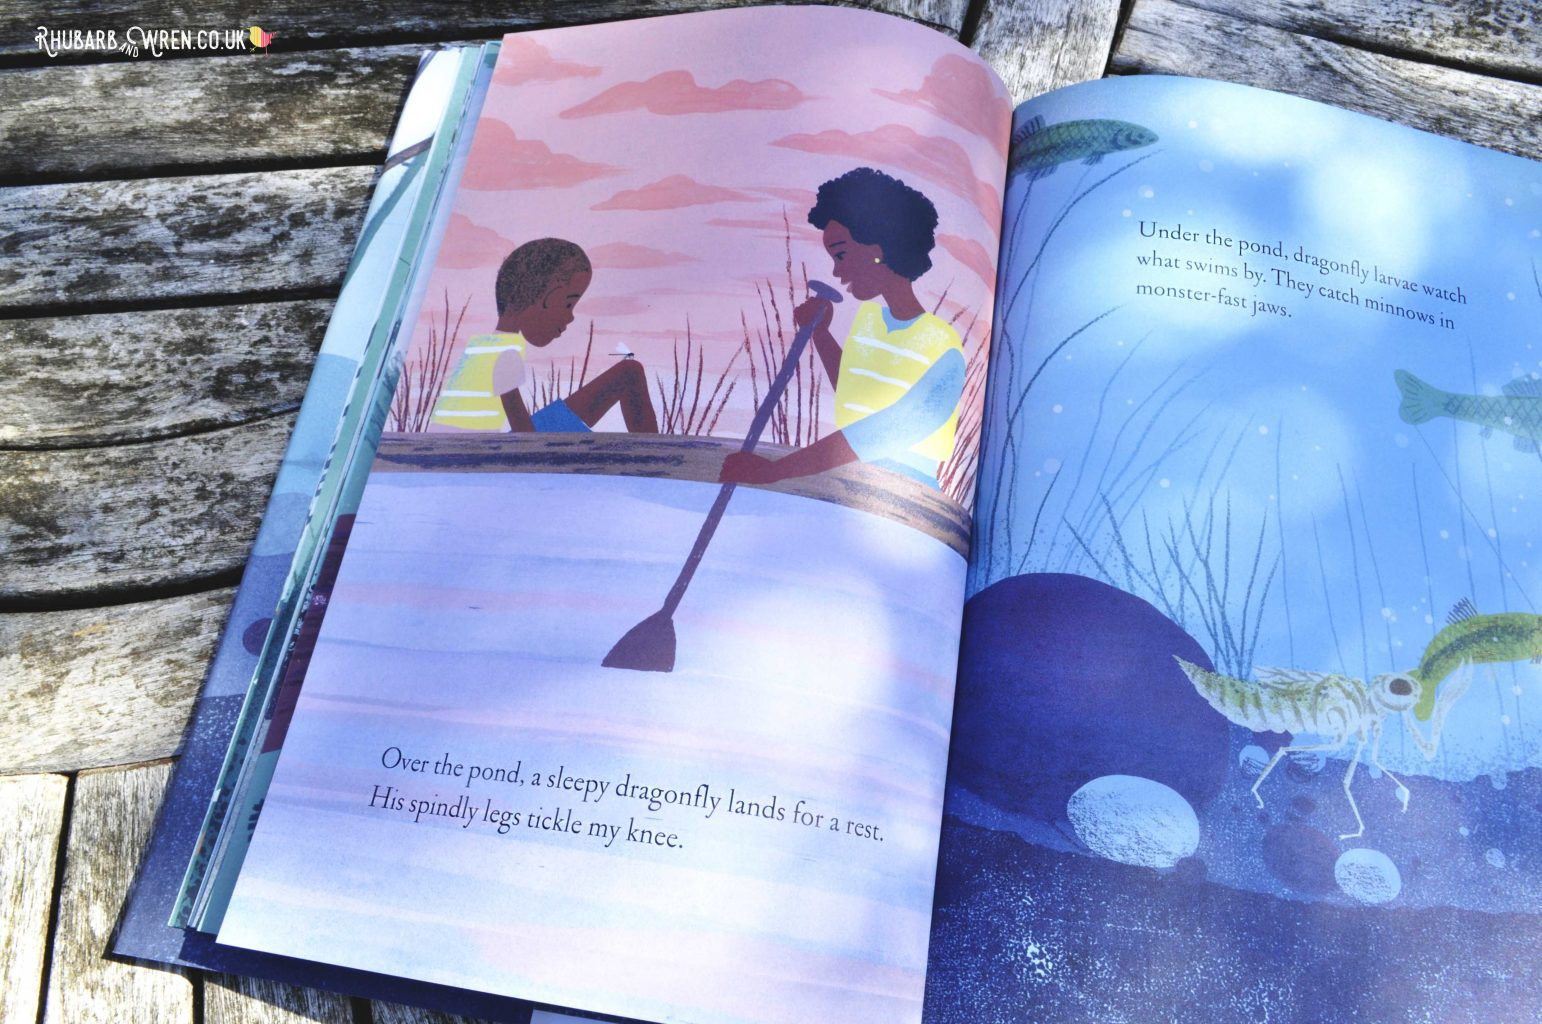 Page from Over and Under the Pond - mother and son paddling home in their boat